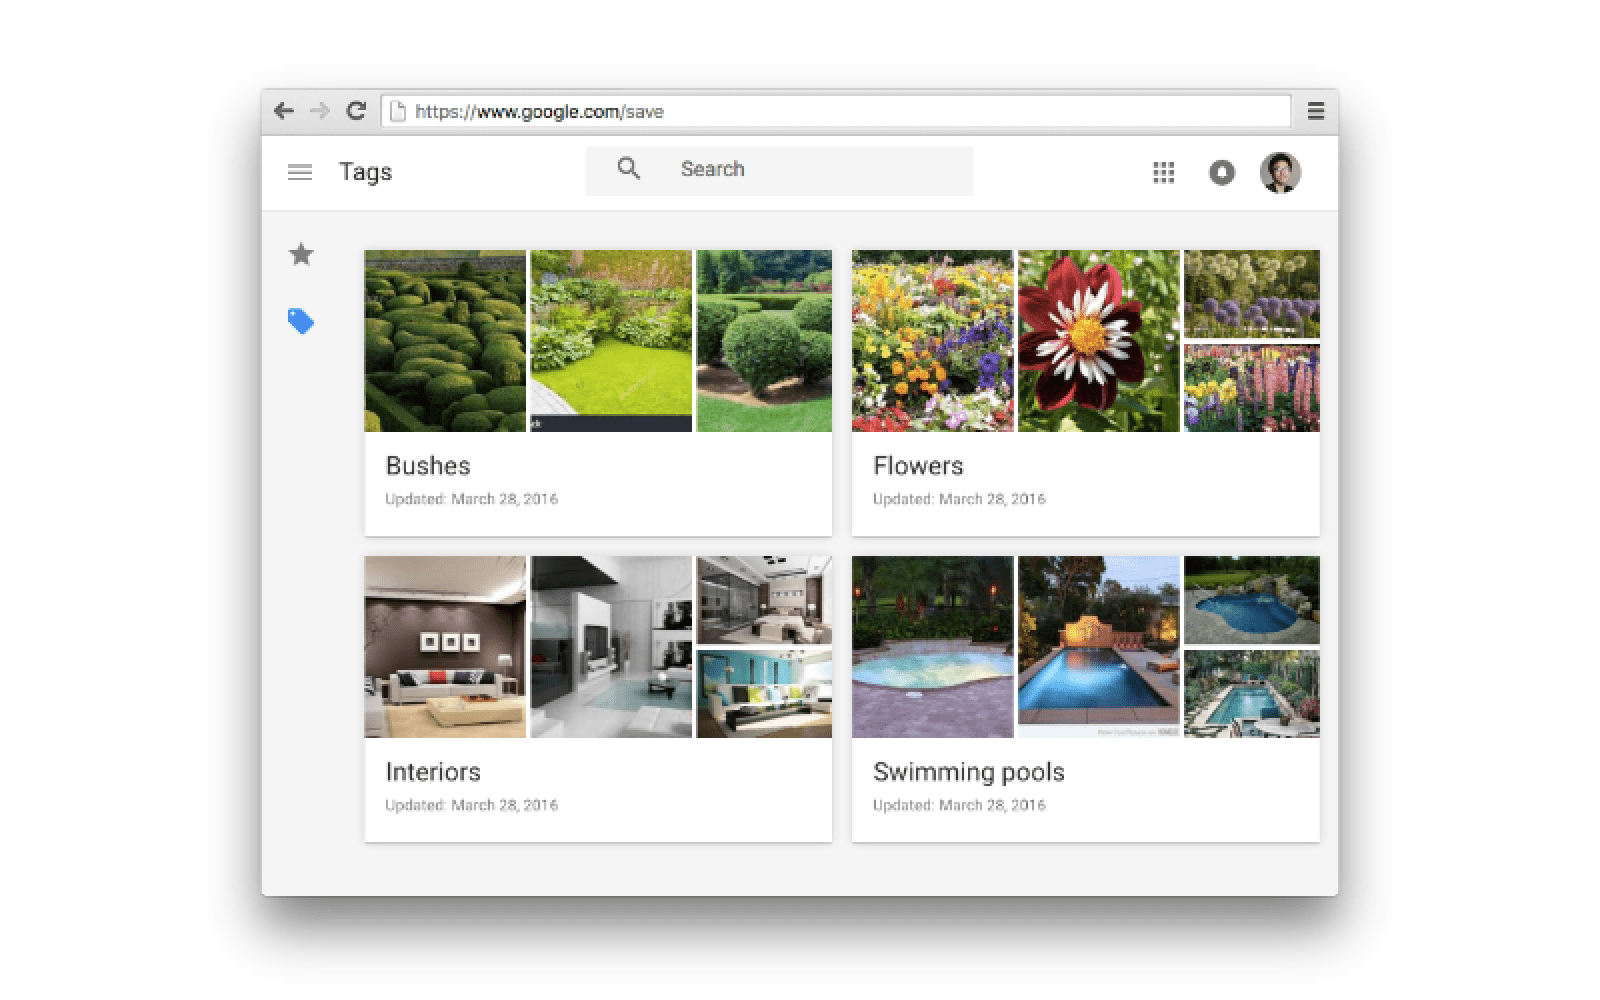 Pinterest-like image saving and tagging feature added to Google Search on the web